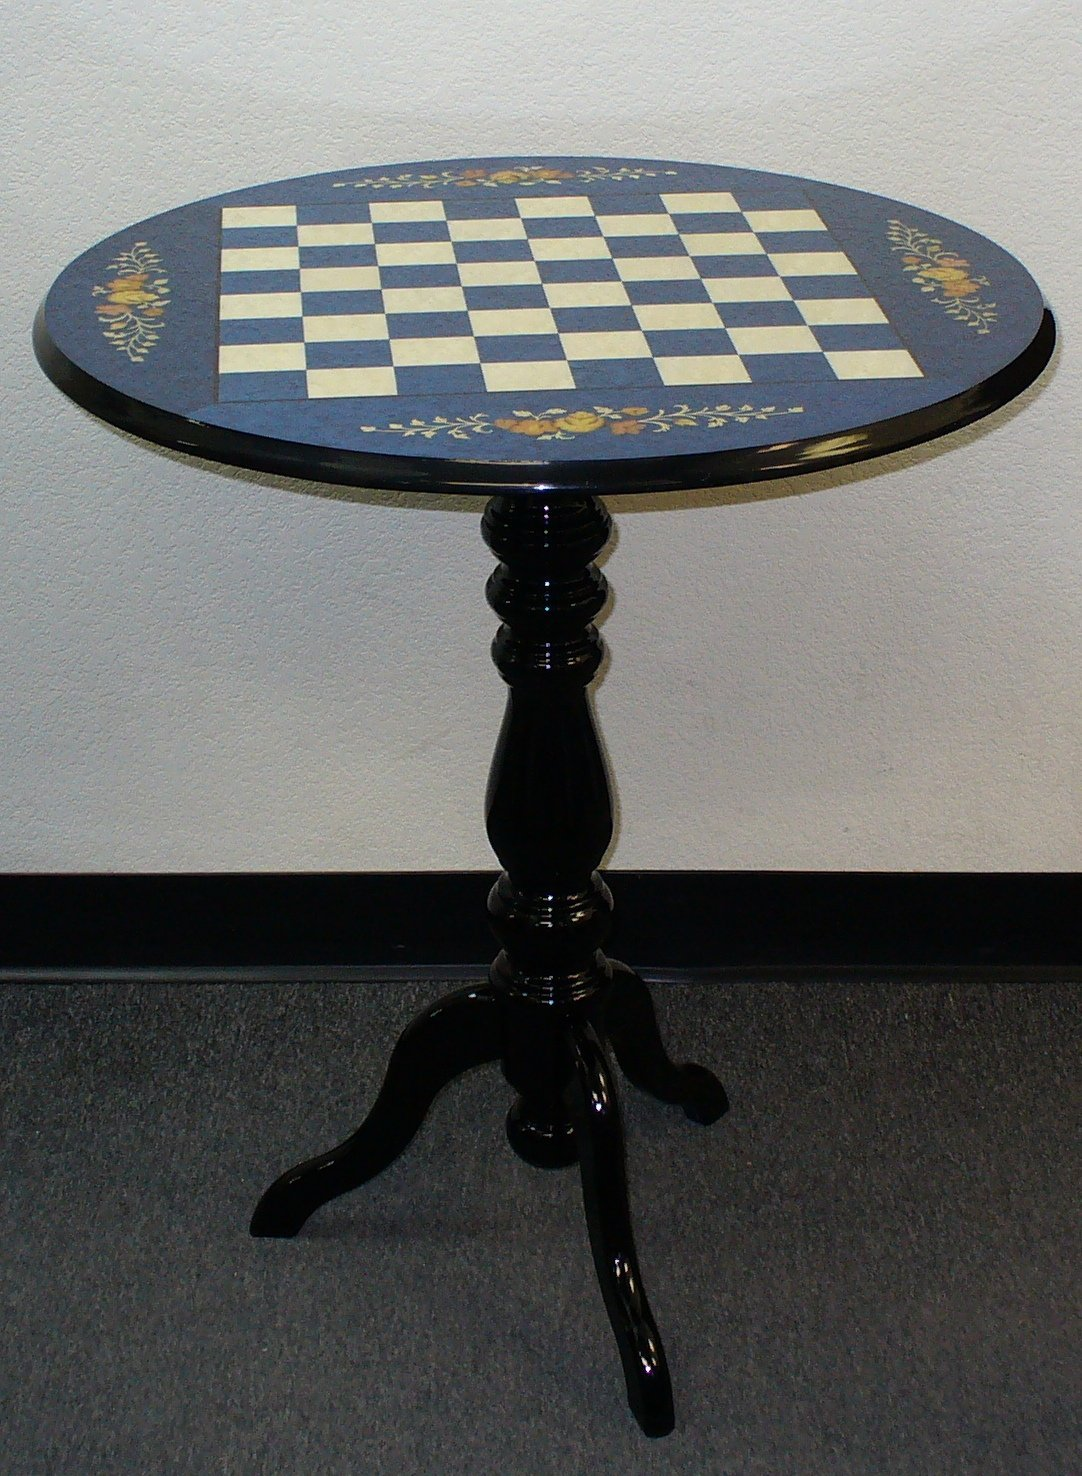 Round Chess Set Round Briarwood Blue Floral Lacquered Chess Table